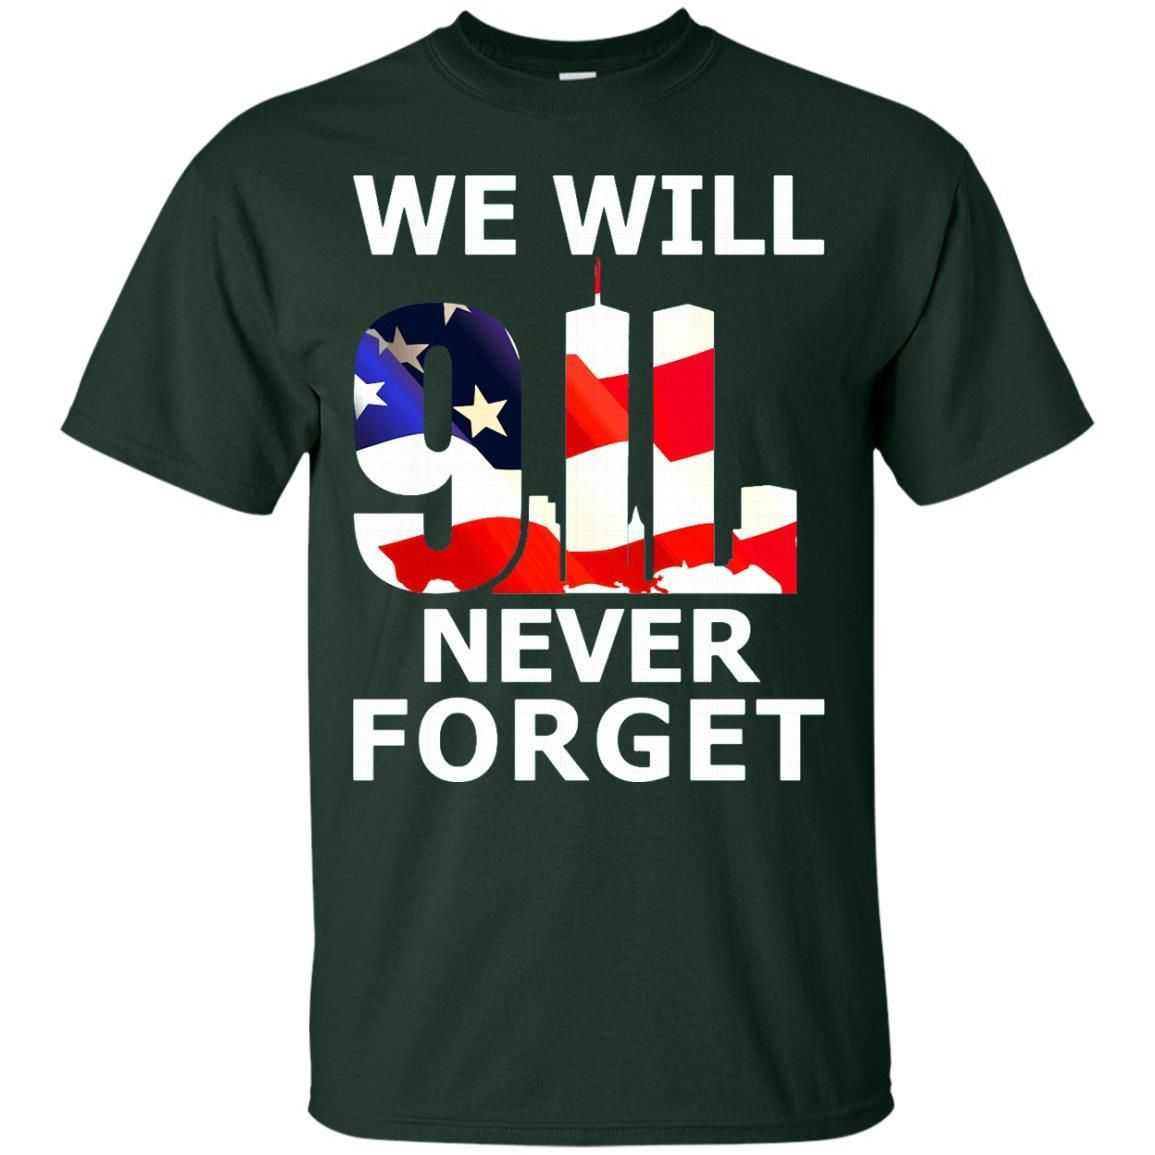 Sep 11 Memorial Day T shirts We Will Never Forget Hoodies Sweatshirts